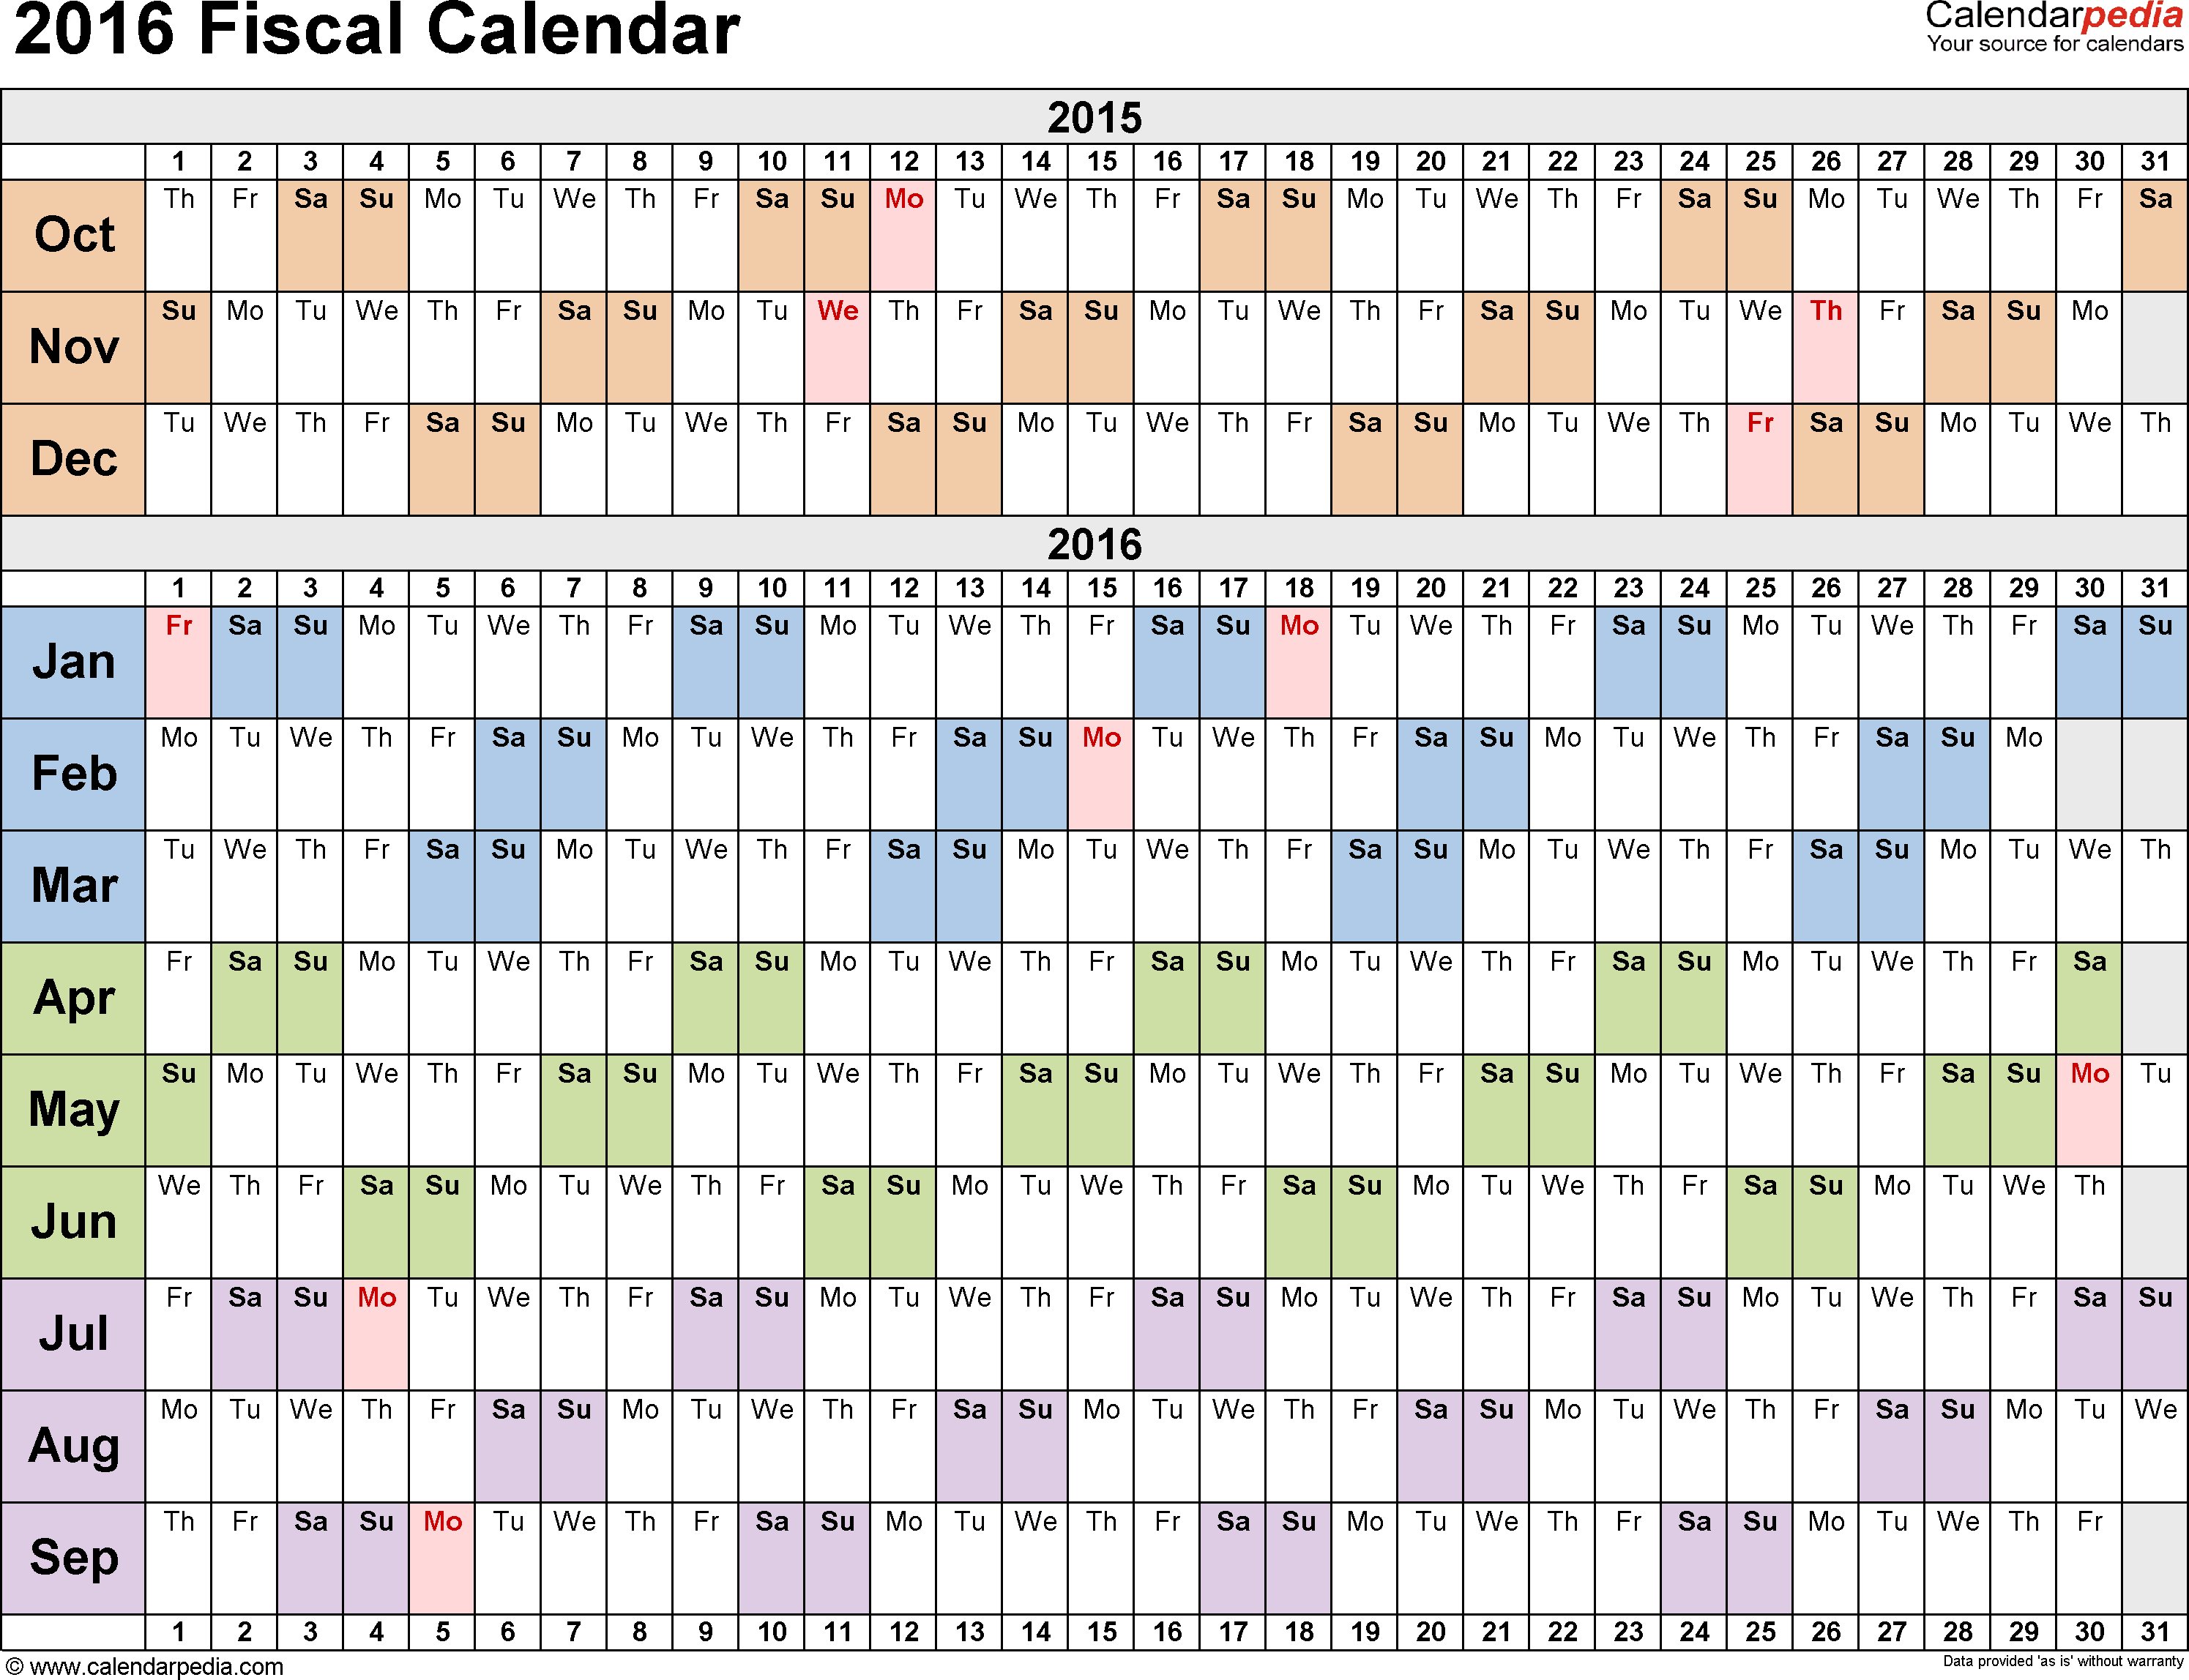 Template 3: Fiscal year calendar 2016 for Excel, landscape orientation, days horizontally (linear), 1 page